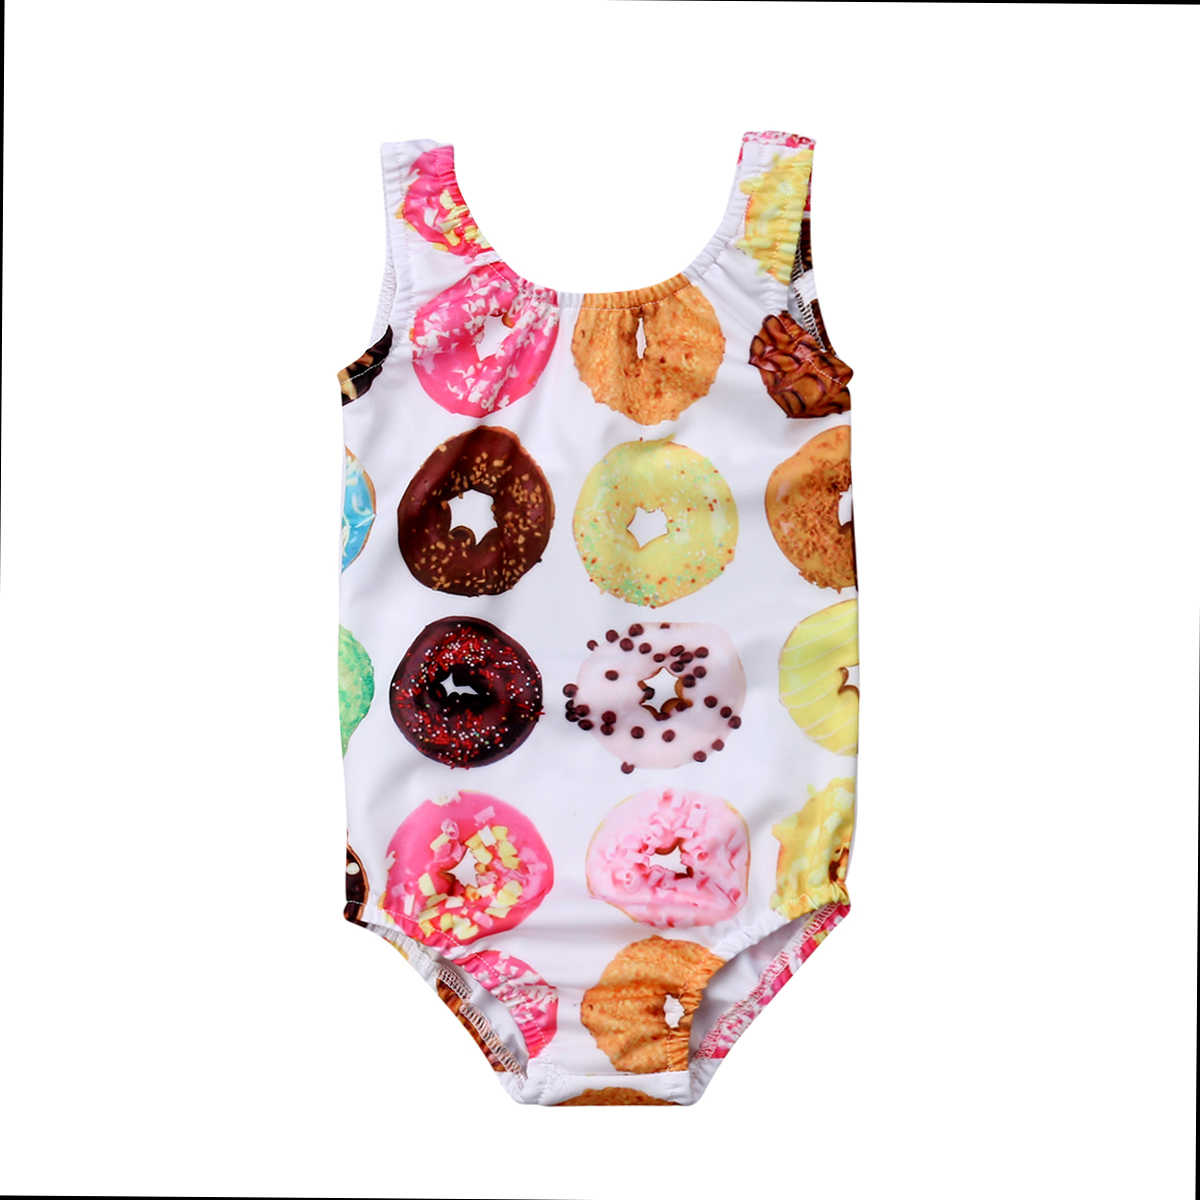 e6a303cac546 Little Girls Donuts Printing One-piece Swimsuit Toddler Baby Kid Girl Cartoon  Swimsuits Swimwear Swimming